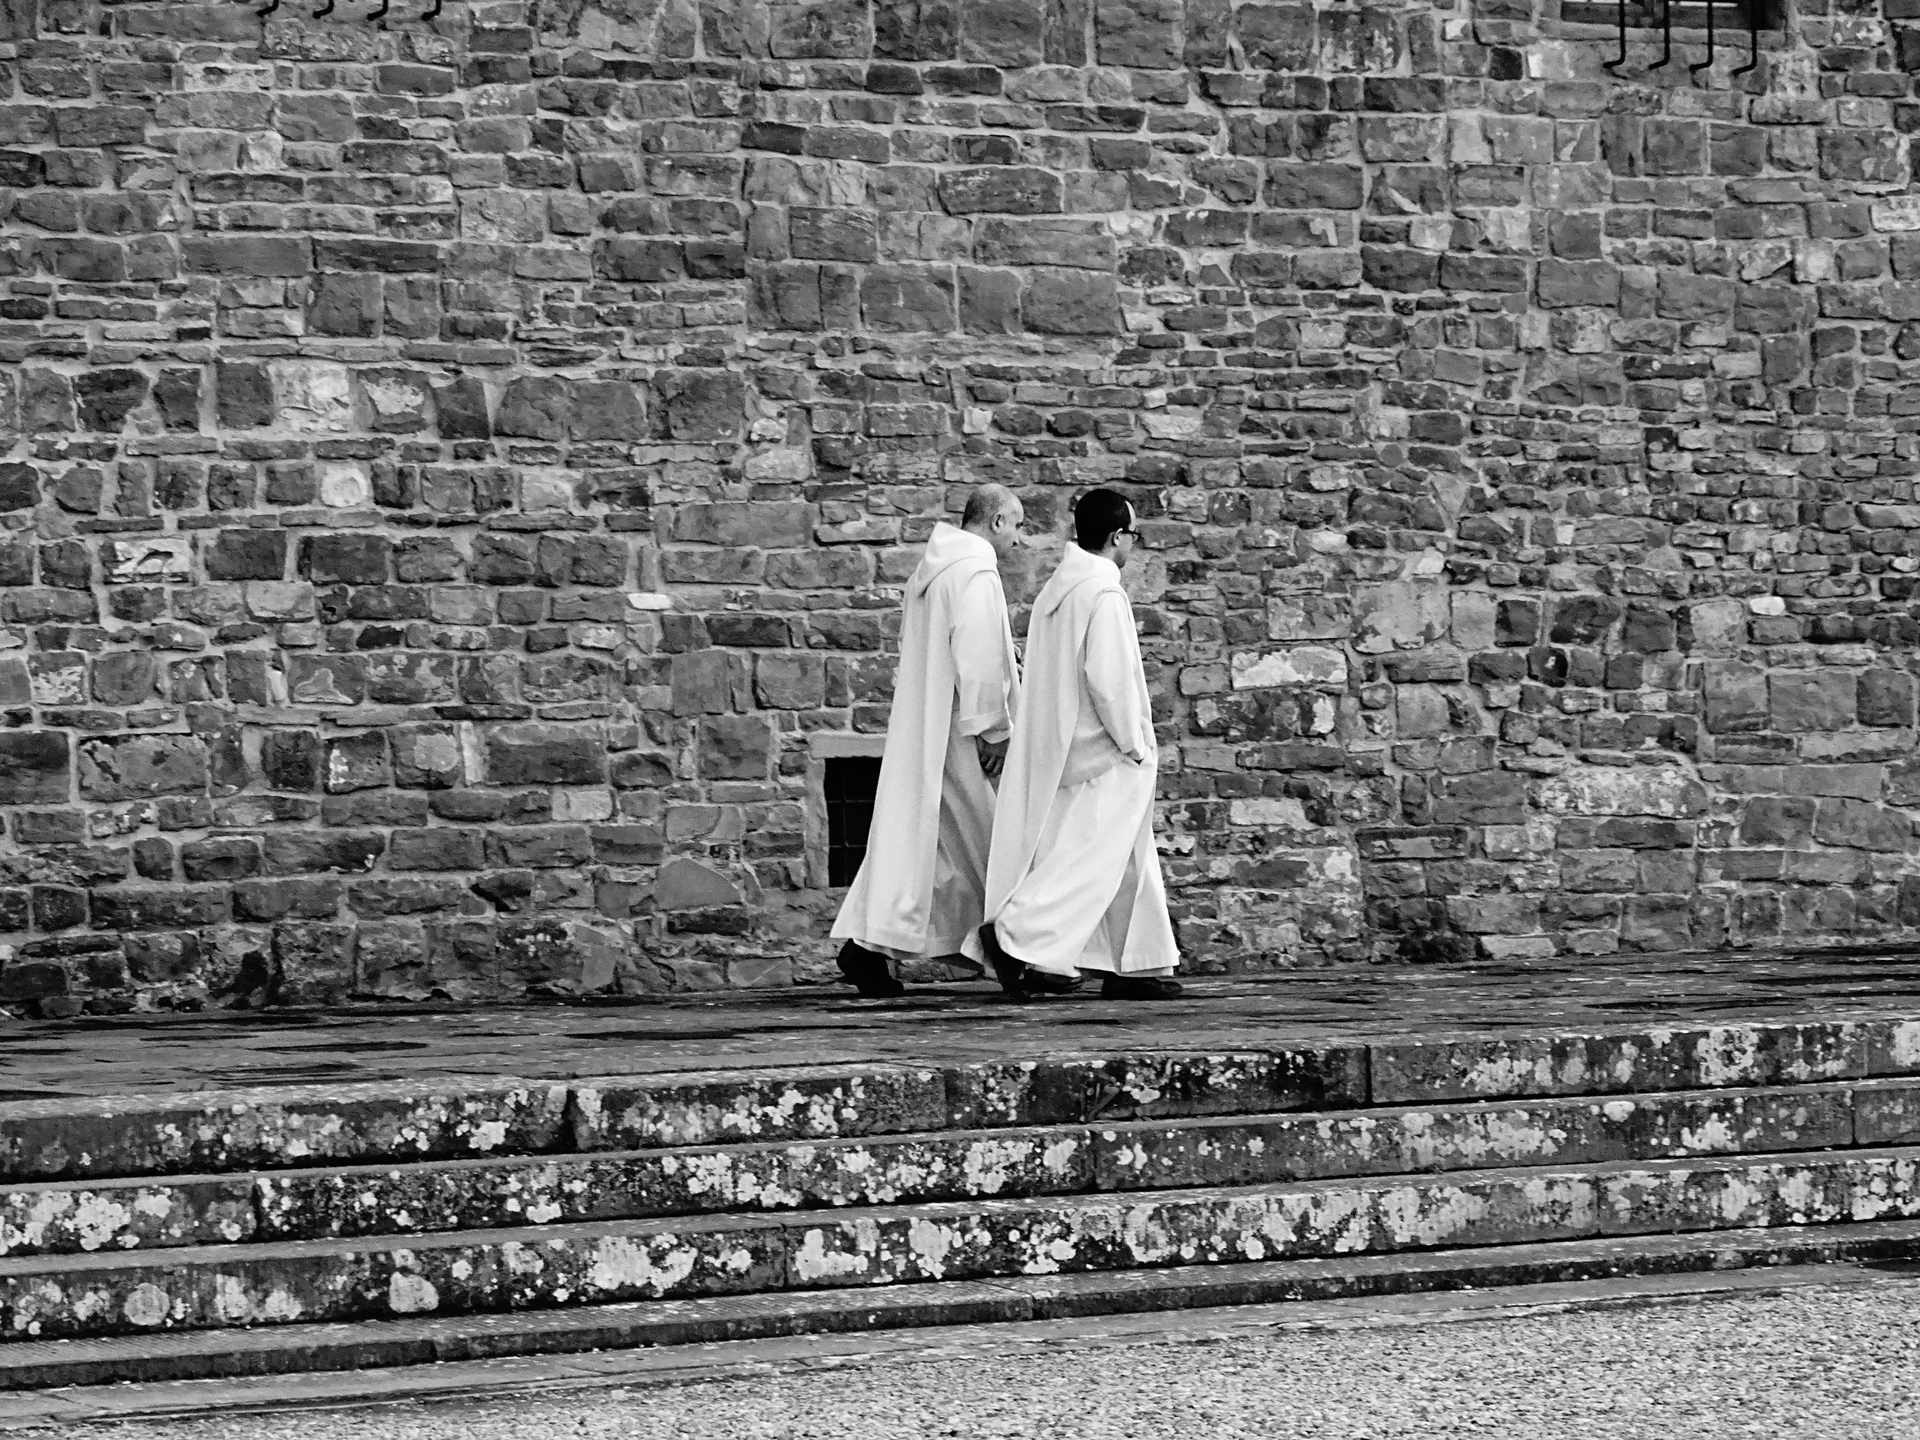 Monks at San Miniato, Florence  by Stacy Widelitz